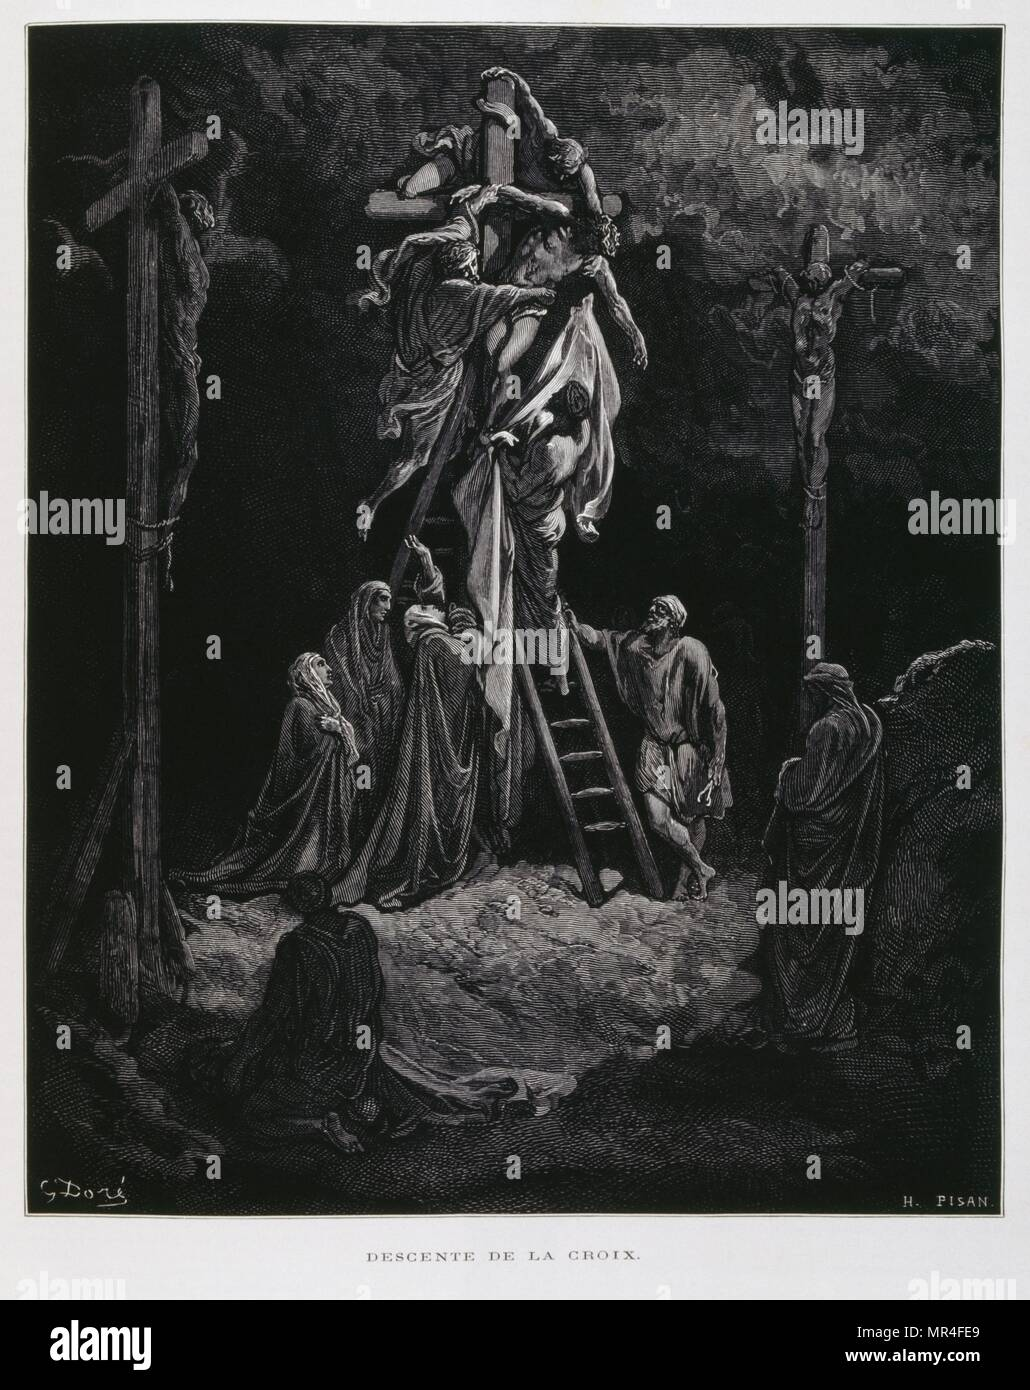 Descent from the cross, the deposition of Christ, Illustration from the Dore Bible 1866. In 1866, the French artist and illustrator Gustave Dore (1832–1883), published a series of 241 wood engravings for a new deluxe edition of the 1843 French translation of the Vulgate Bible, popularly known as the Bible de Tours. This new edition was known as La Grande Bible de Tours and its illustrations were immensely successful. - Stock Image